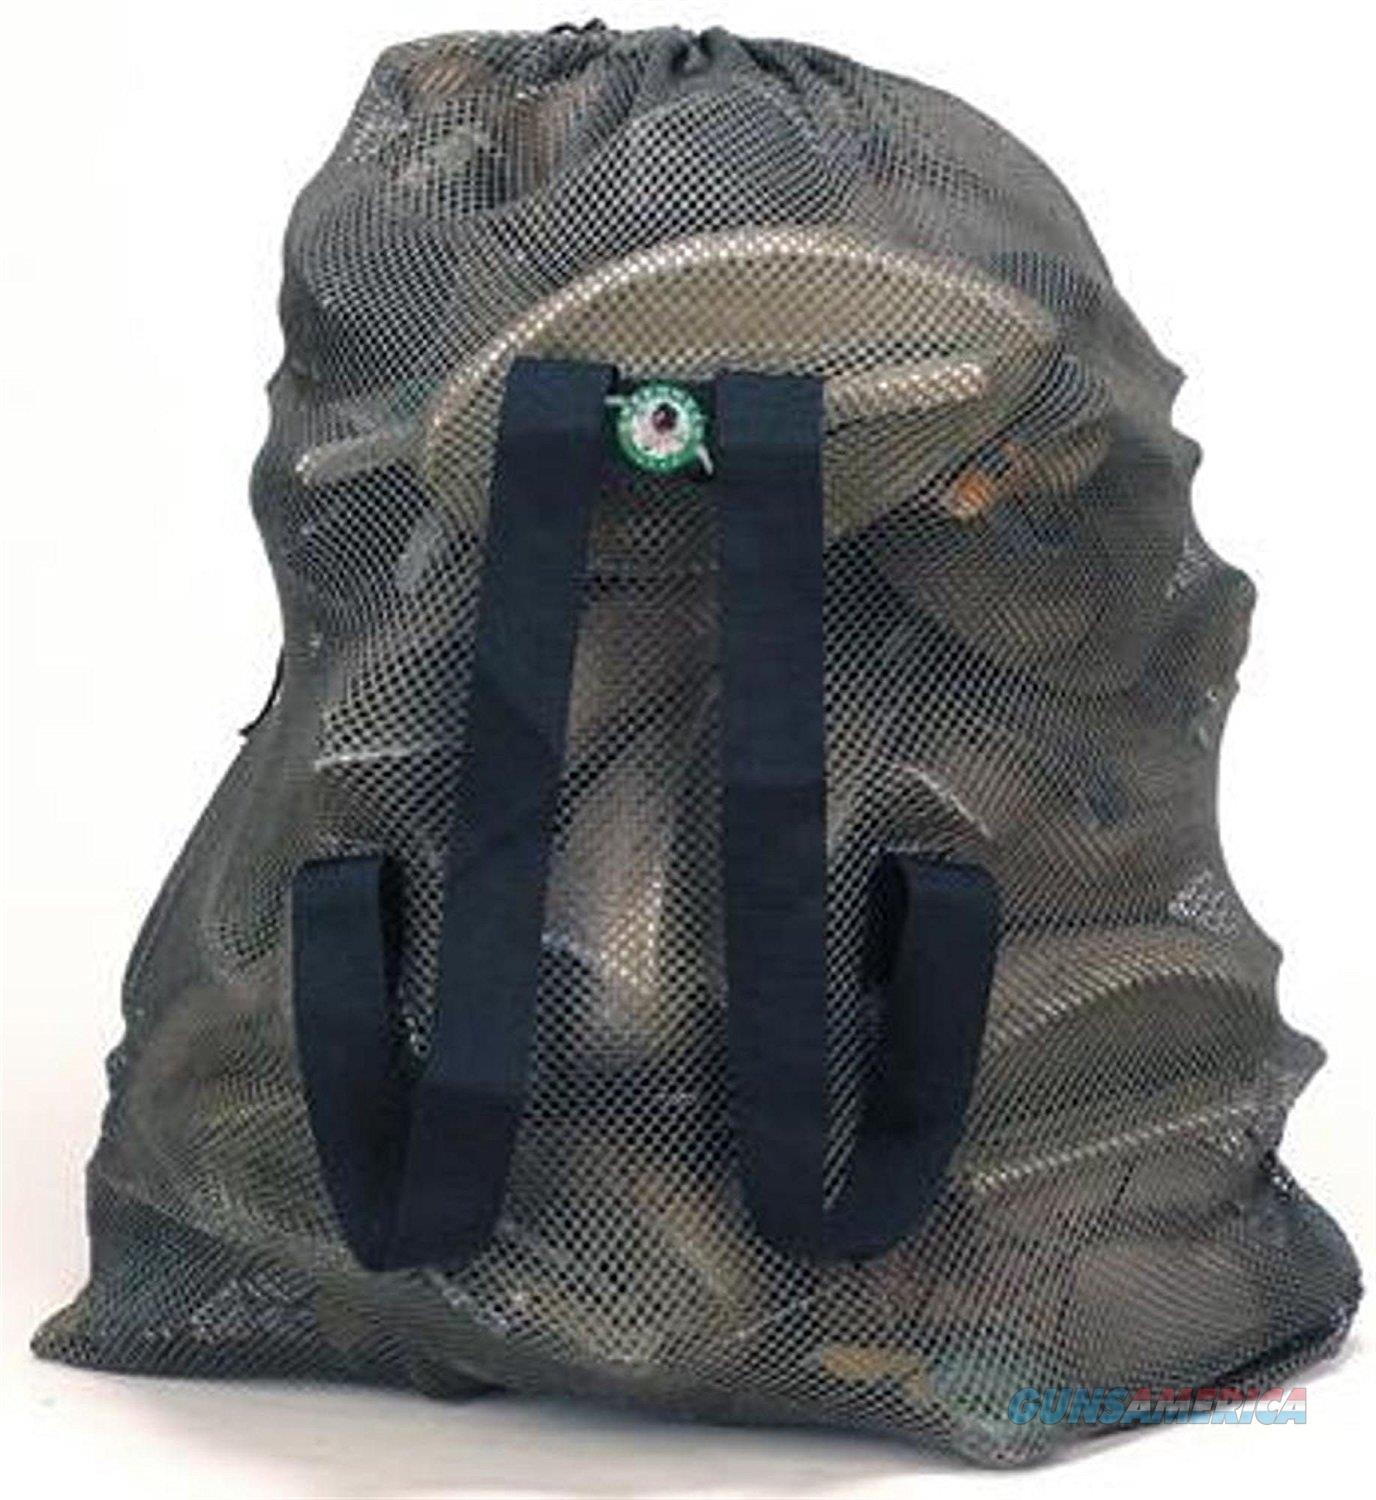 Greenhead Gear Pothole Decoy Bag  Non-Guns > Hunting Clothing and Equipment > Ammo Pouches/Holders/Shell Bags